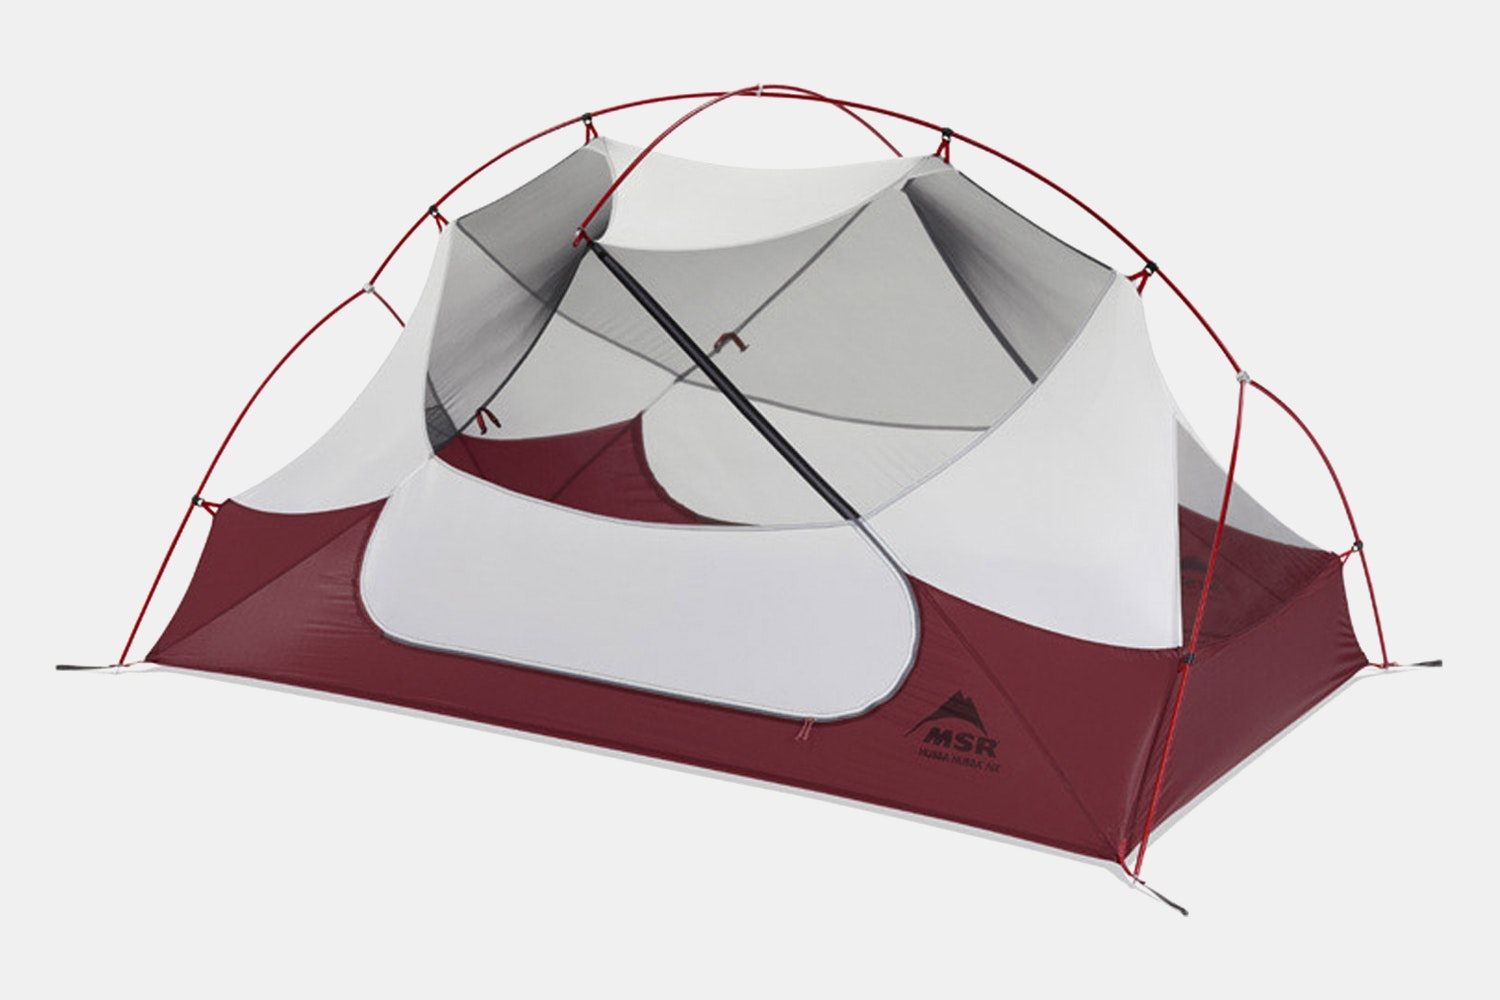 Hubba Hubba NX two-person tent